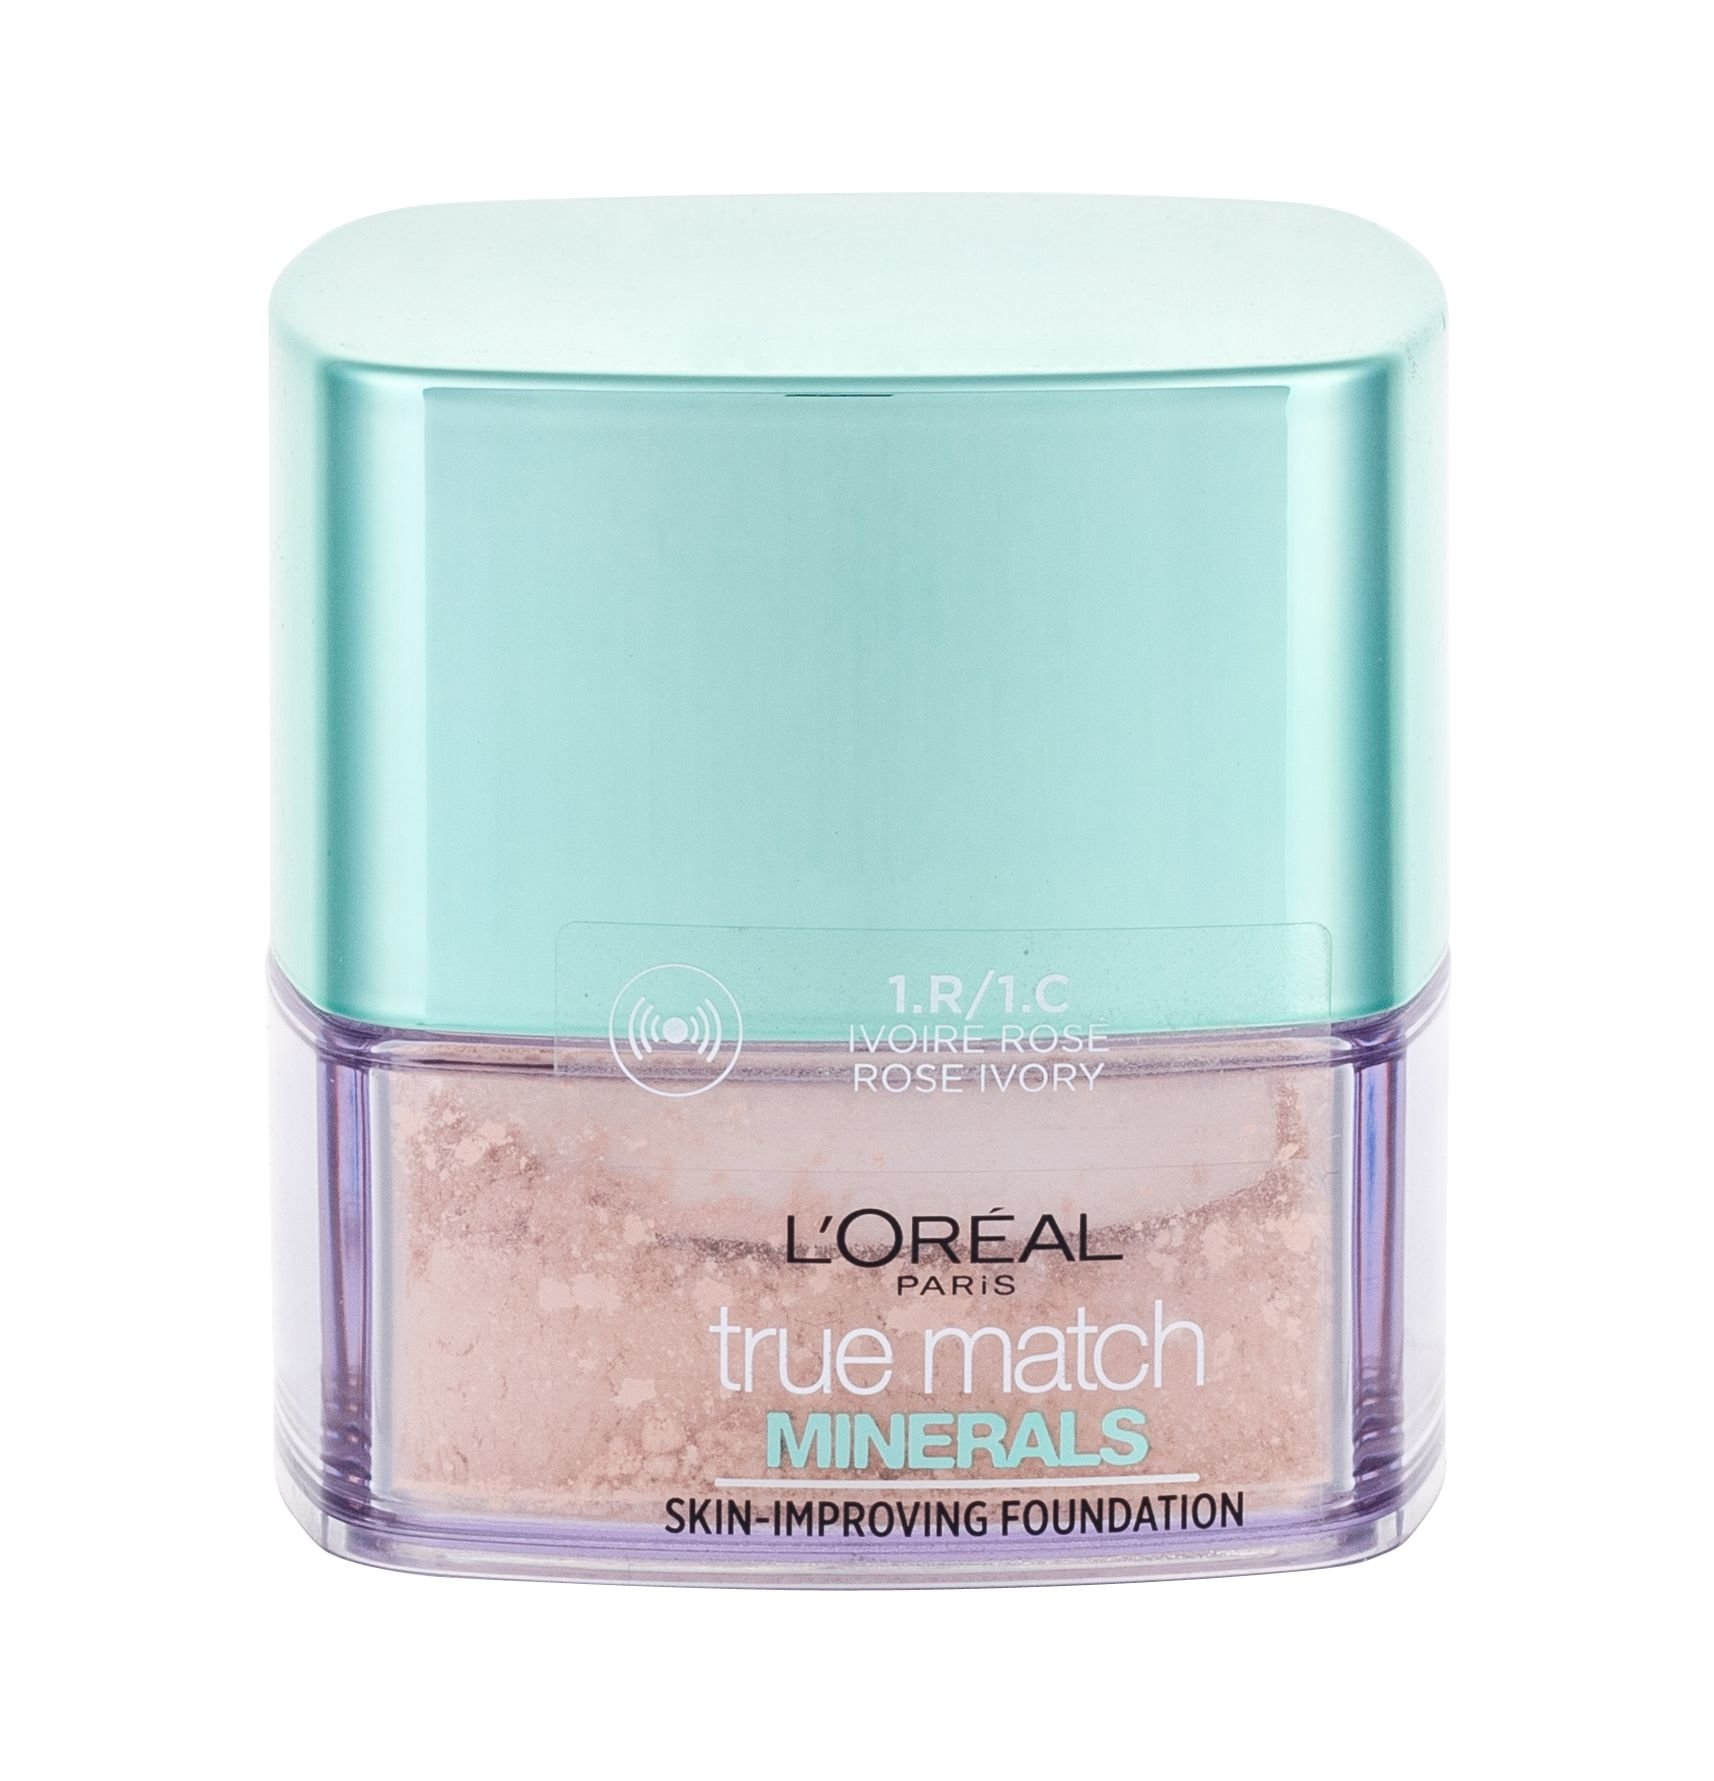 L´Oréal Paris True Match Cosmetic 10ml 1.R/1.C Rose Ivory